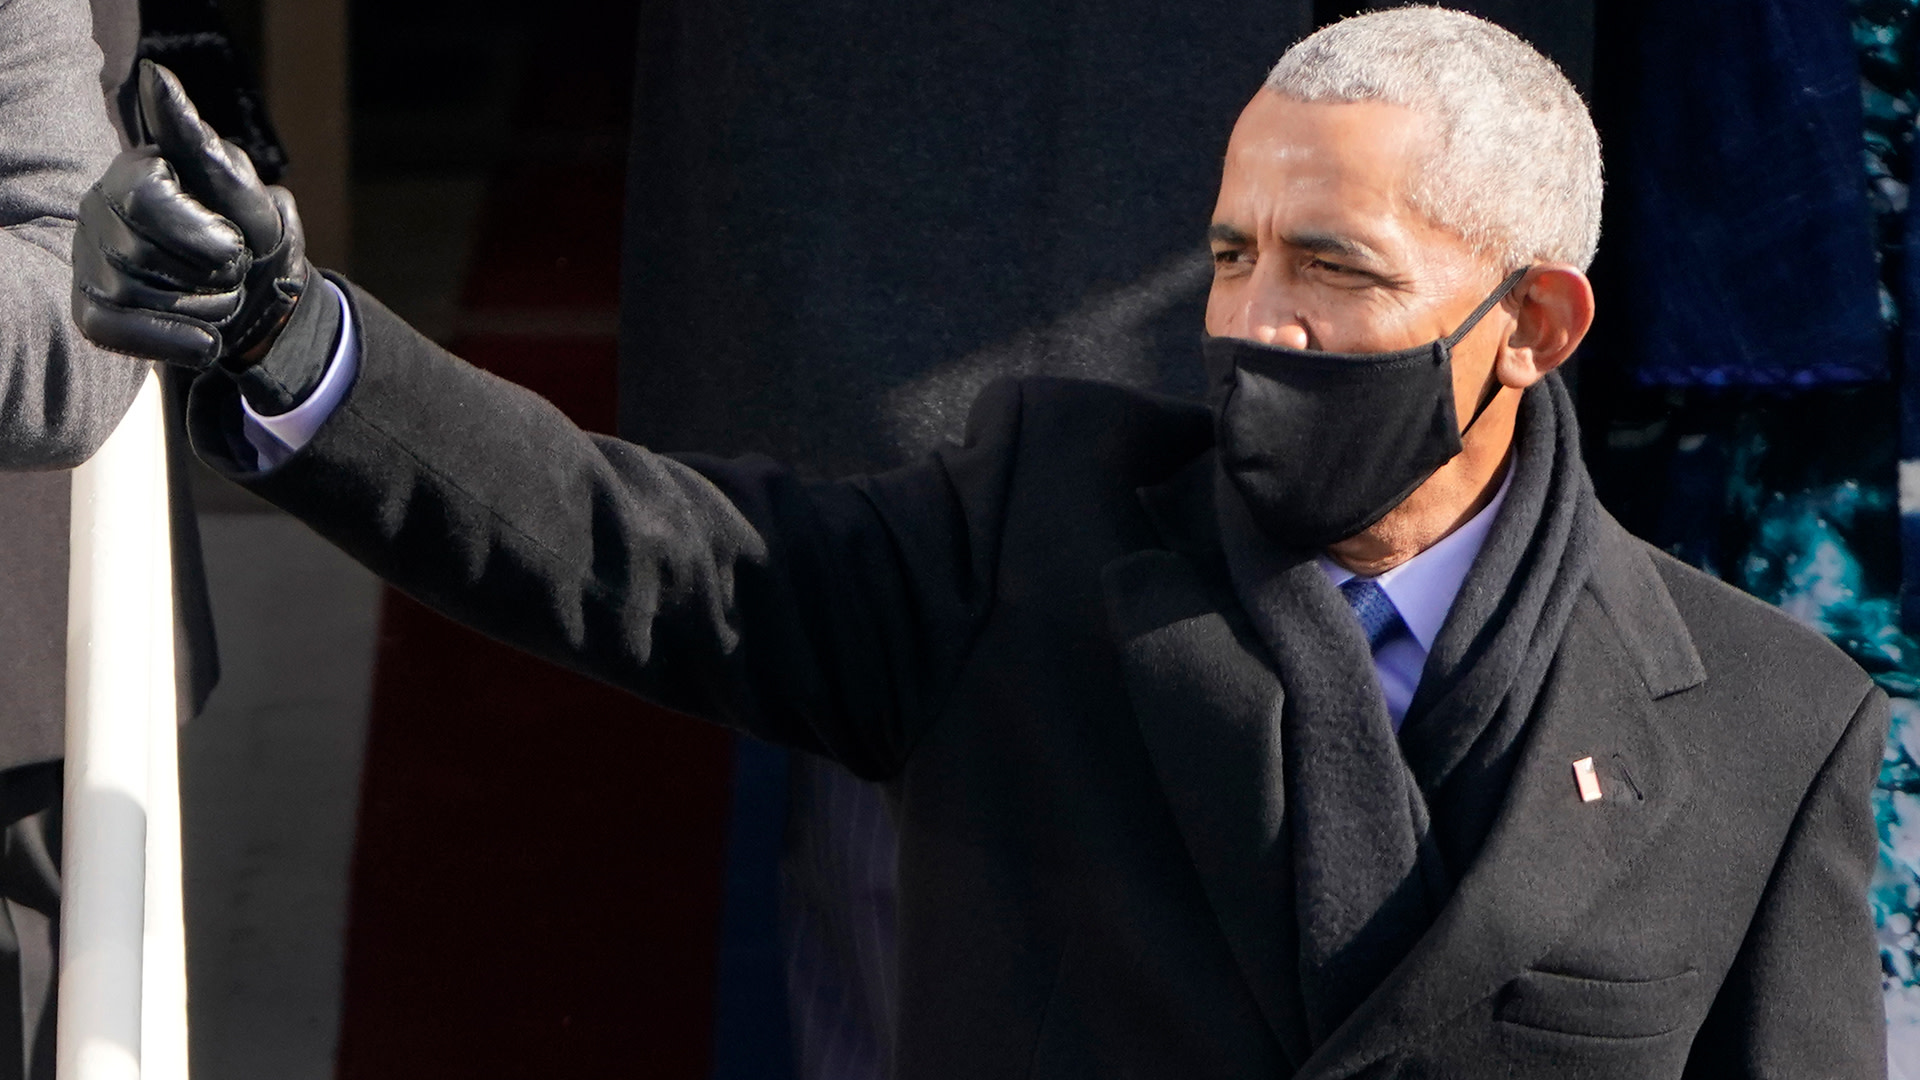 Obama Says He Broke His Schoolmate's Nose for Calling Him a Racial Slur